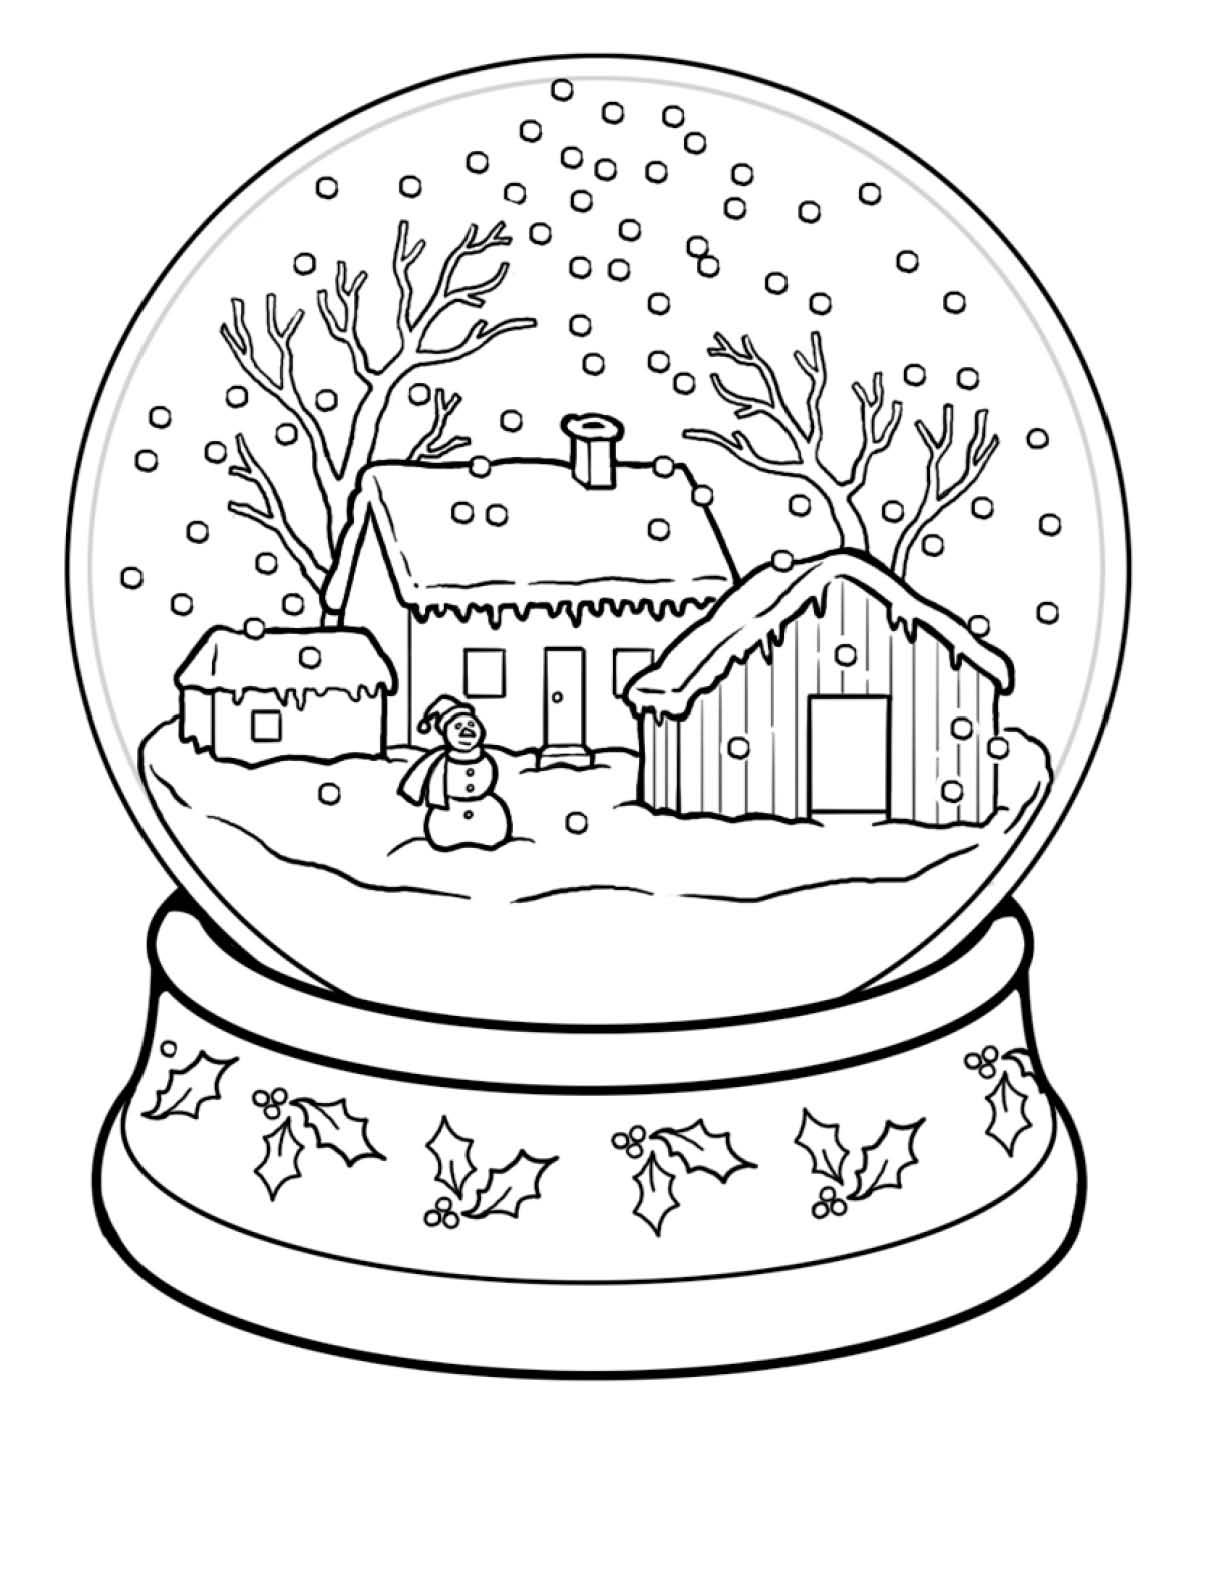 Winter Scenes Coloring Pages Printable | Christmas coloring ...